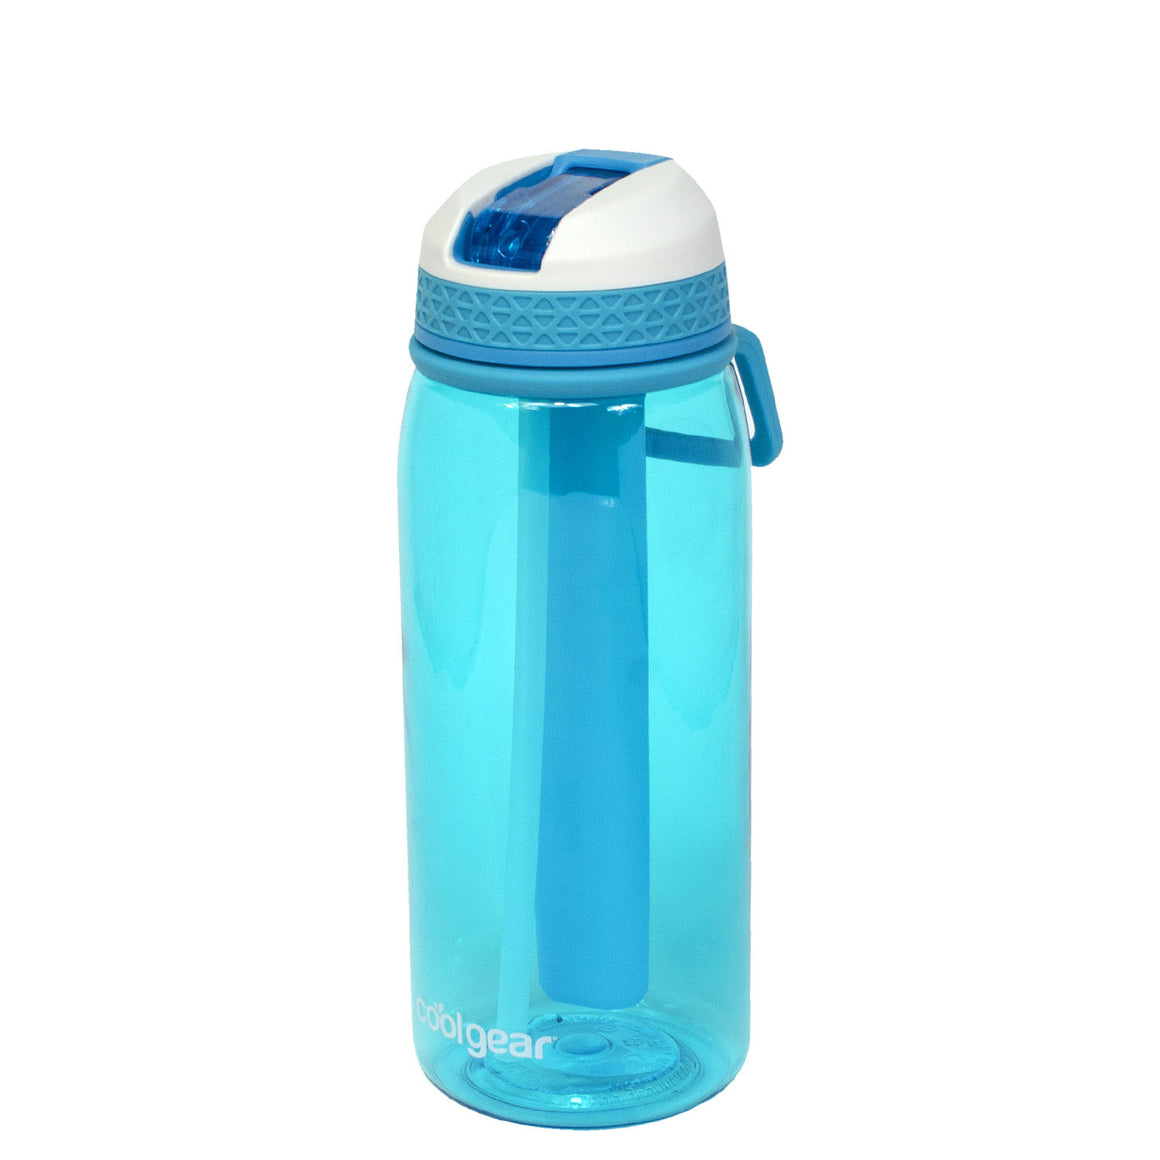 Aquamarine System 32 Oz Water Bottle at Cool Gear Water Bottles